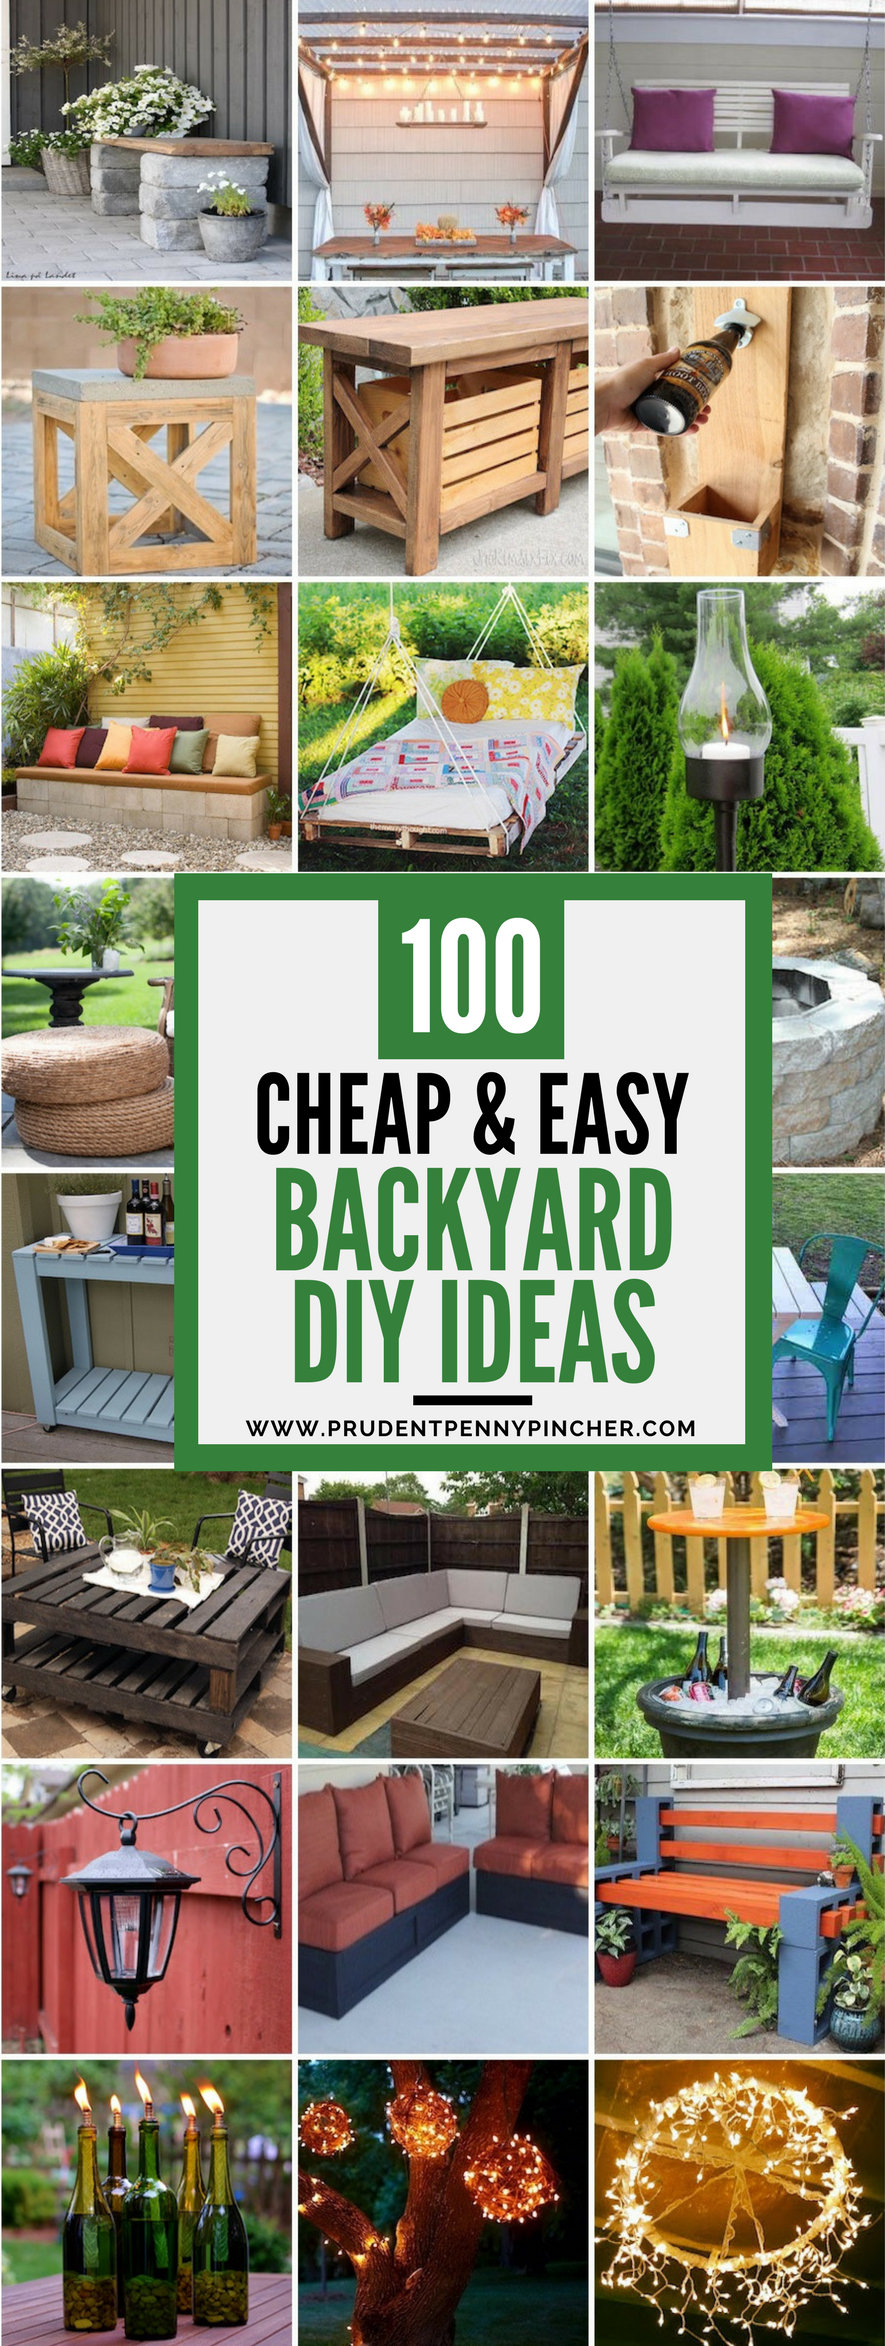 Easy Backyard Landscaping 100 cheap and easy diy backyard ideas - prudent penny pincher